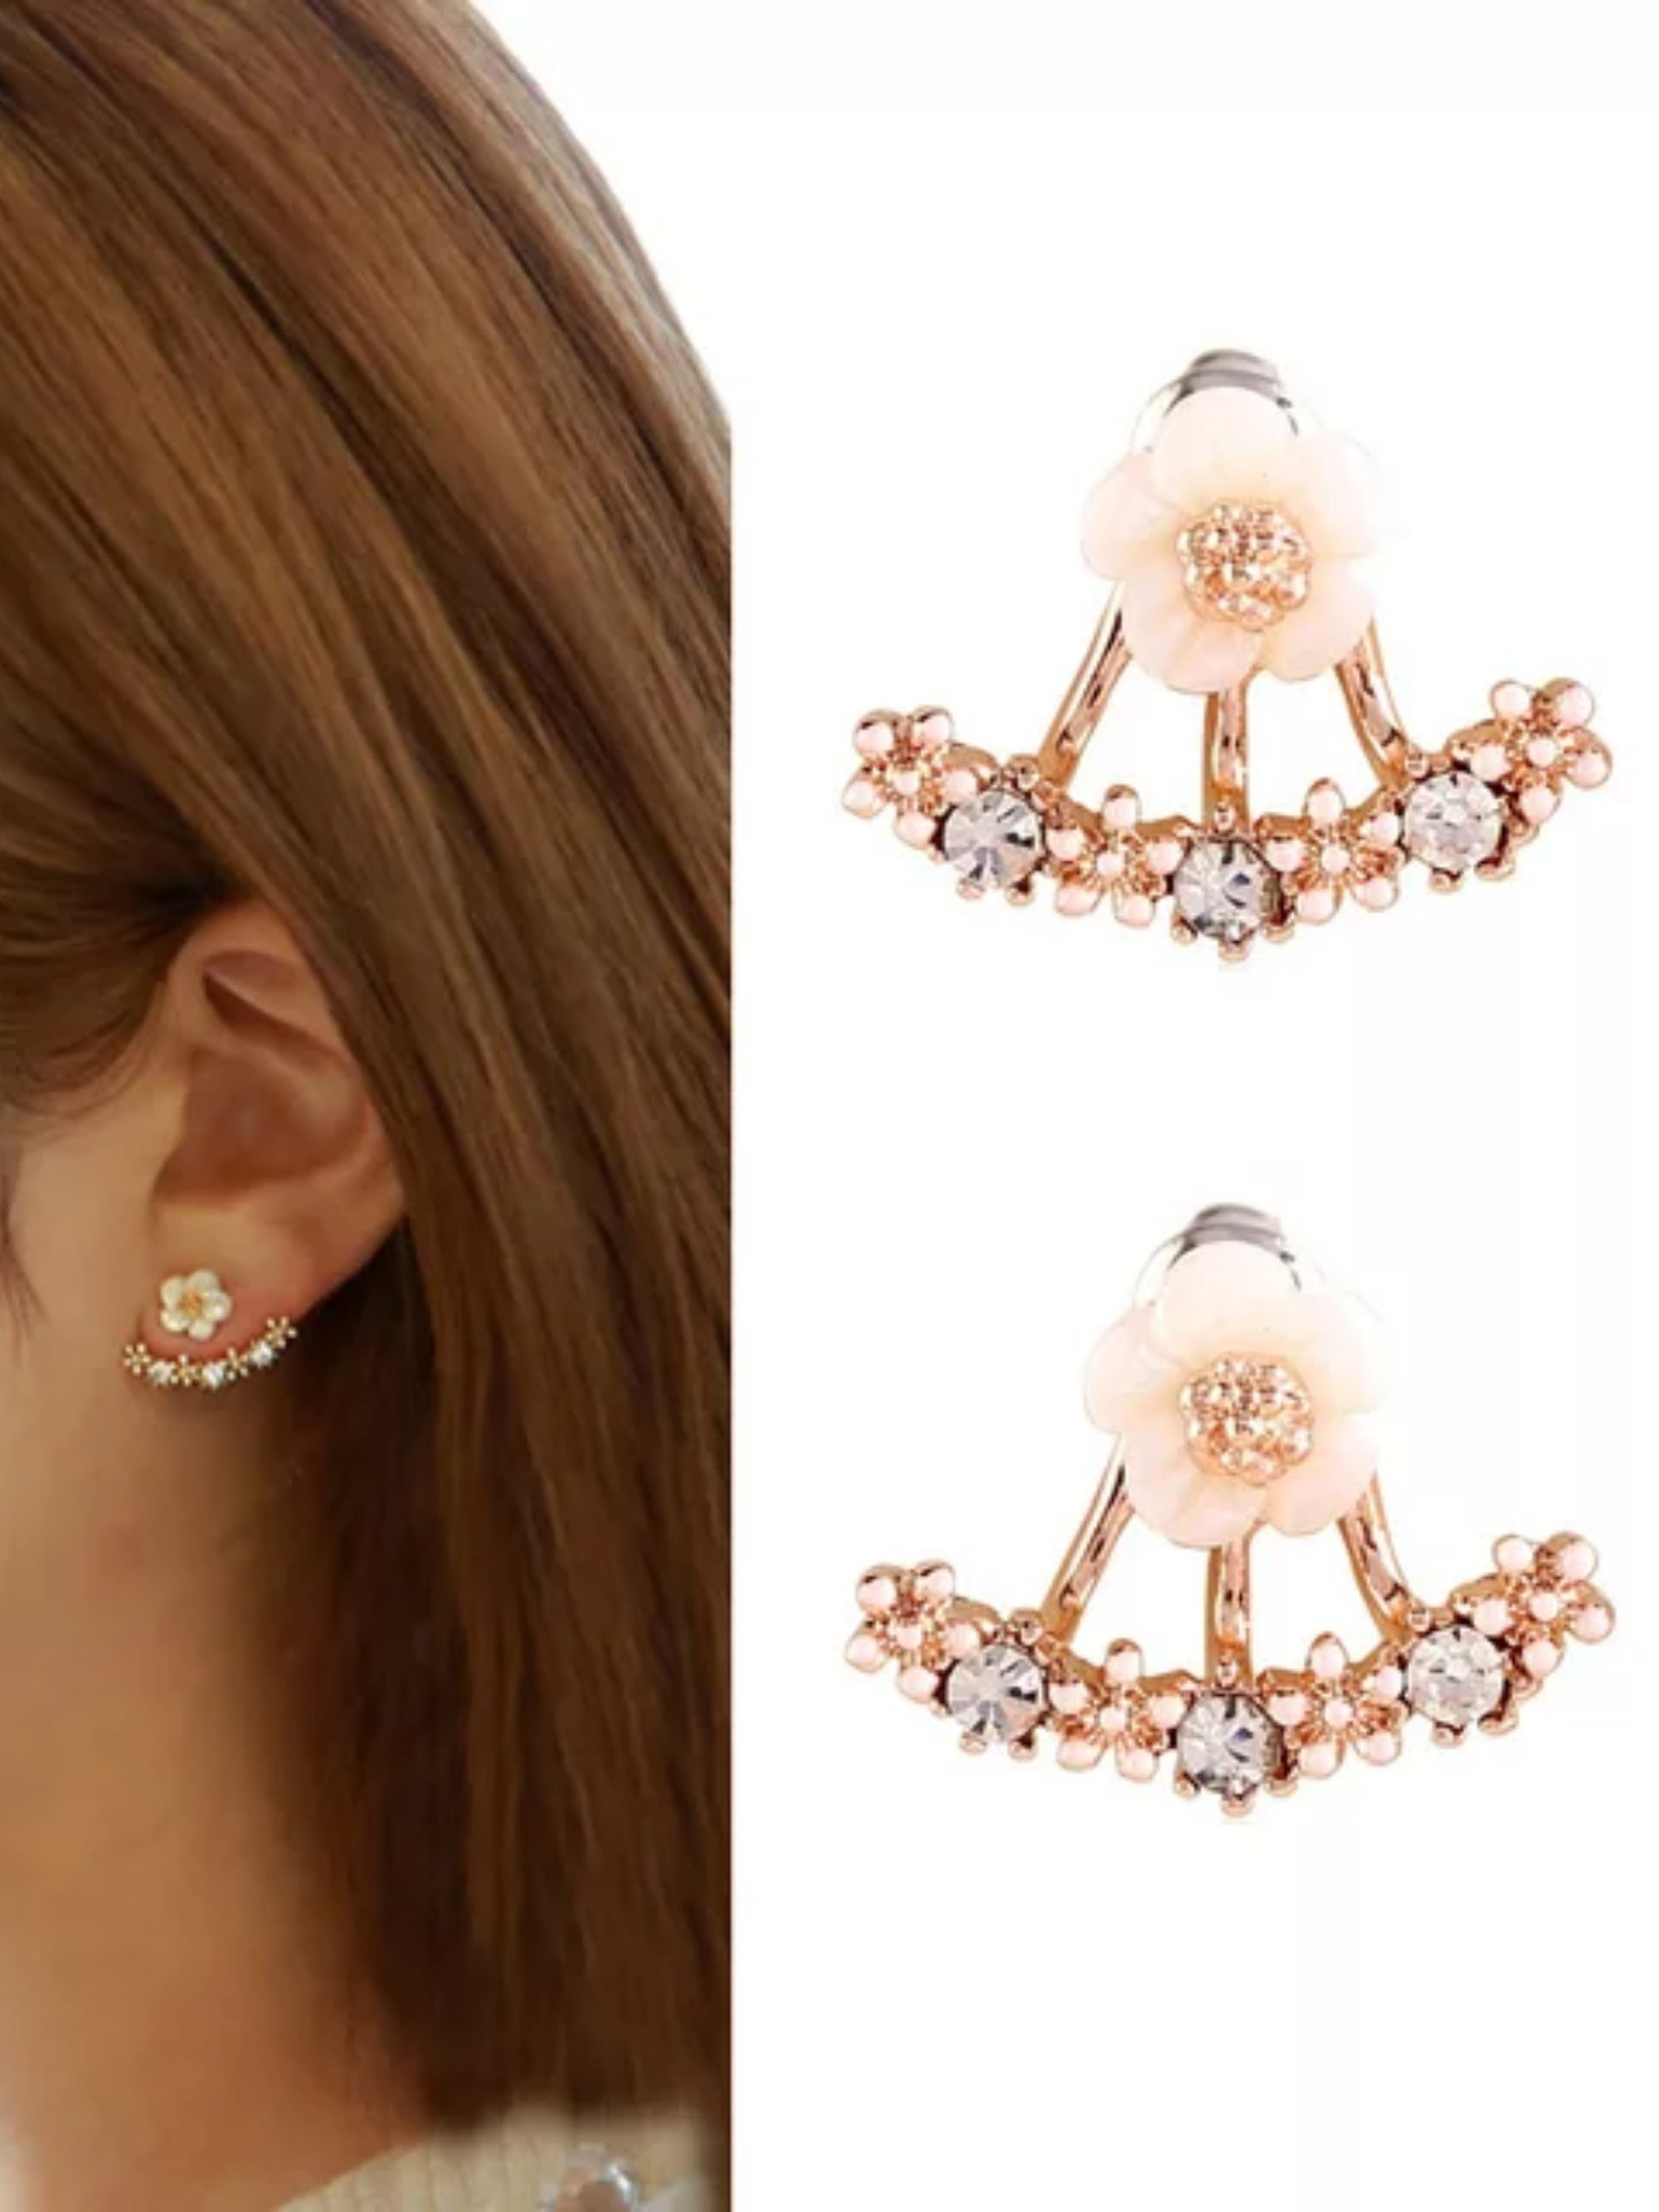 My Perfect Daisy Earrings in Rose Gold